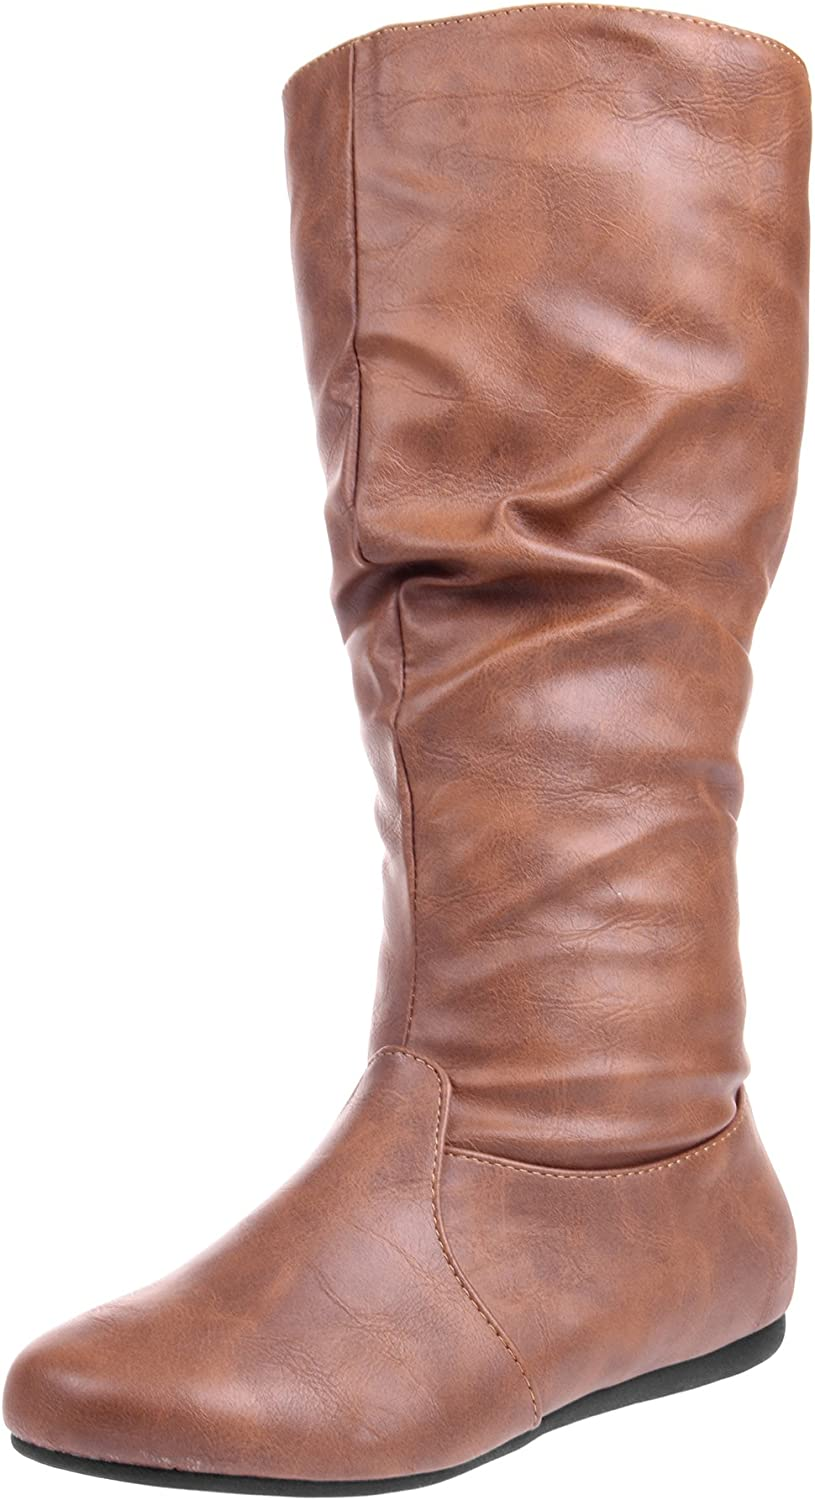 Enimay Women's Winter Fashion High Slouchy Mid Flat Calf Max 82% OFF Leather Large-scale sale